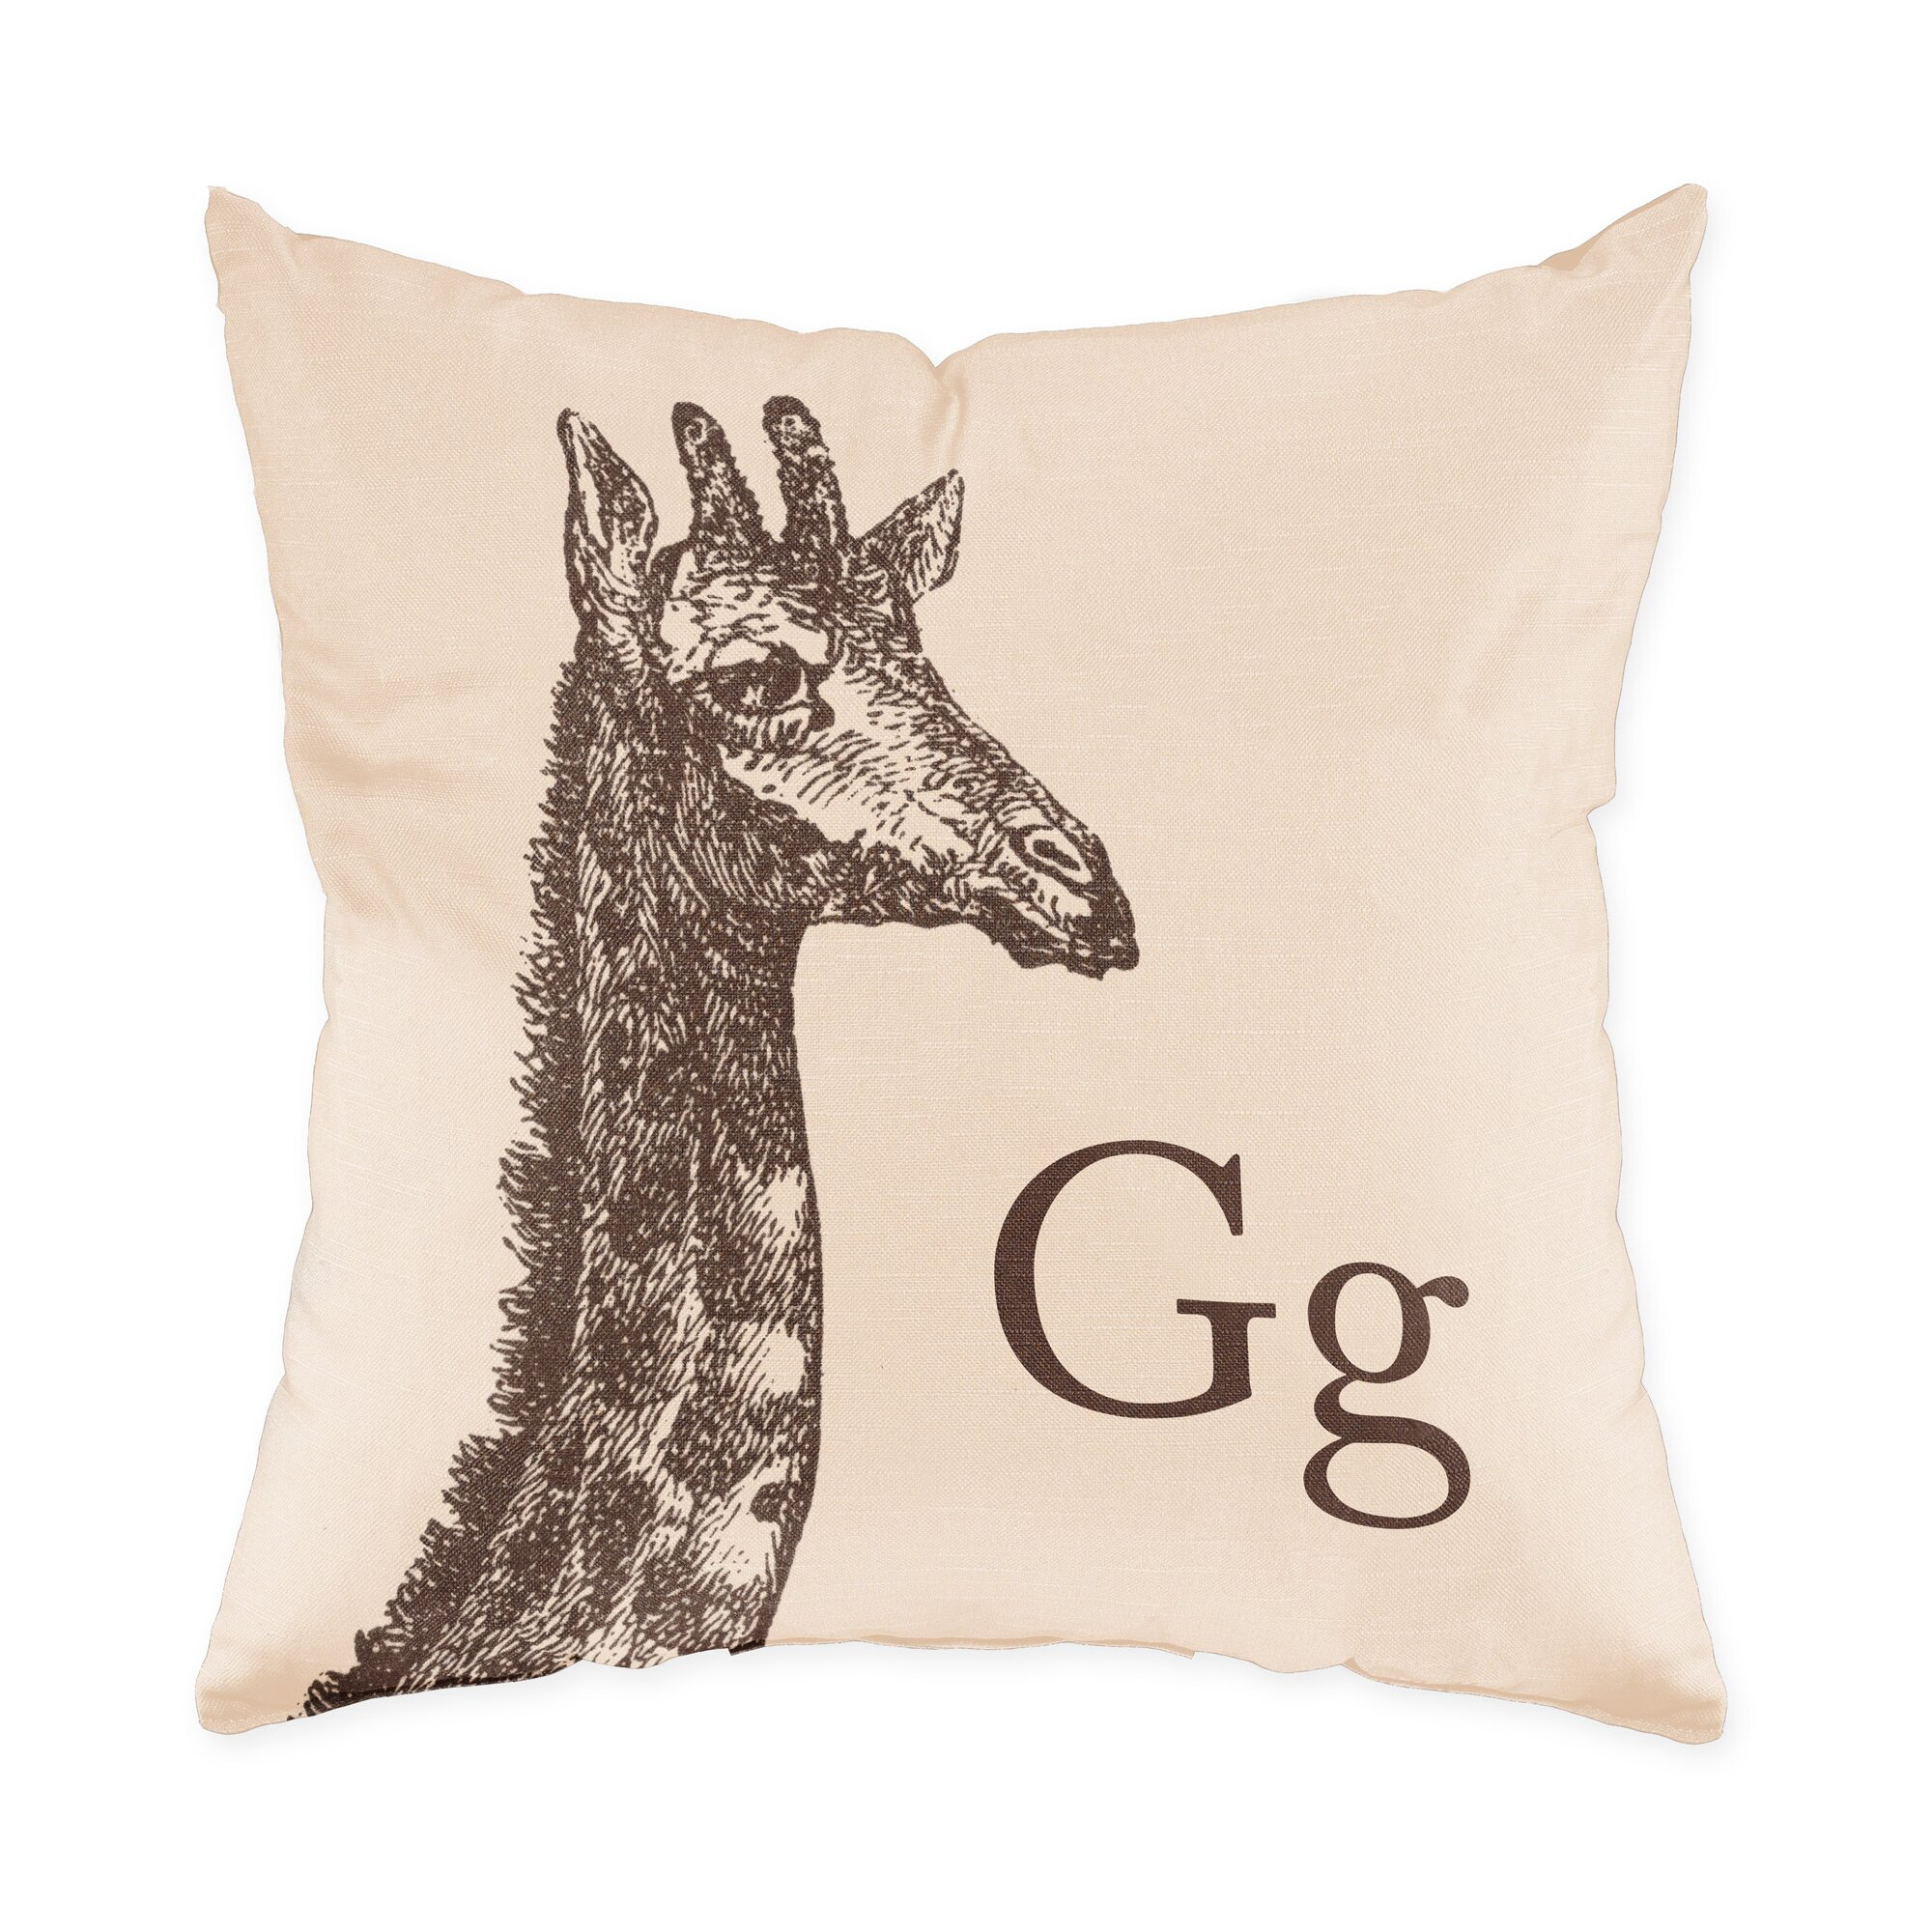 Giraffe Decorative Pillow : Checkerboard Giraffe Throw Pillow & Reviews Wayfair